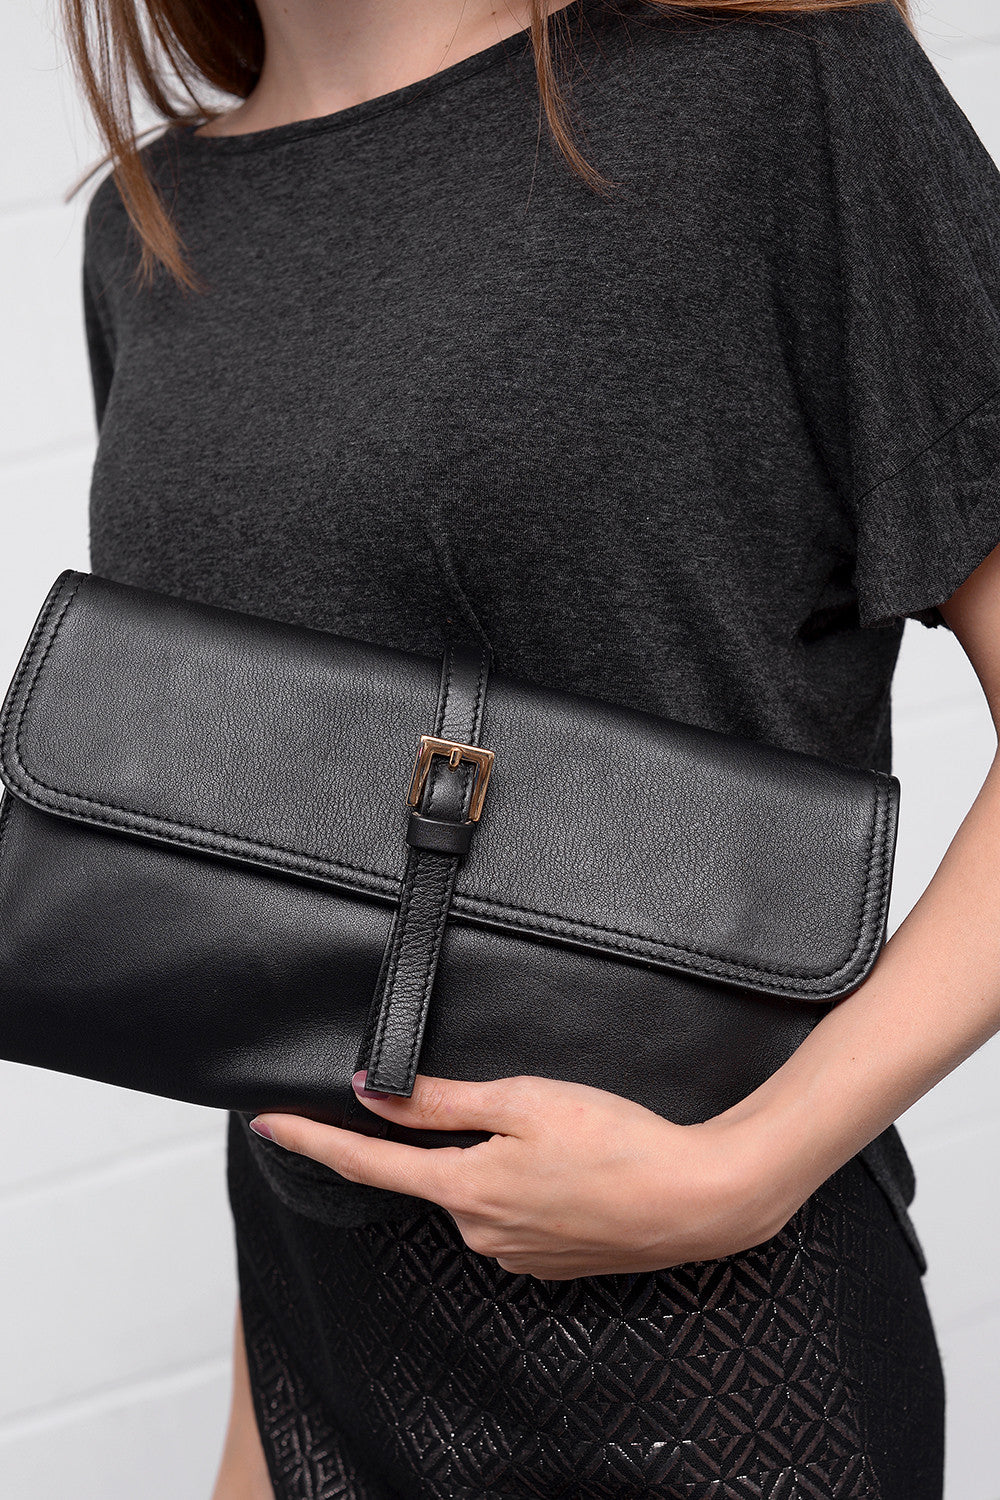 Bovita Ma Bag - nero - PREGO - made with love - Damenmode